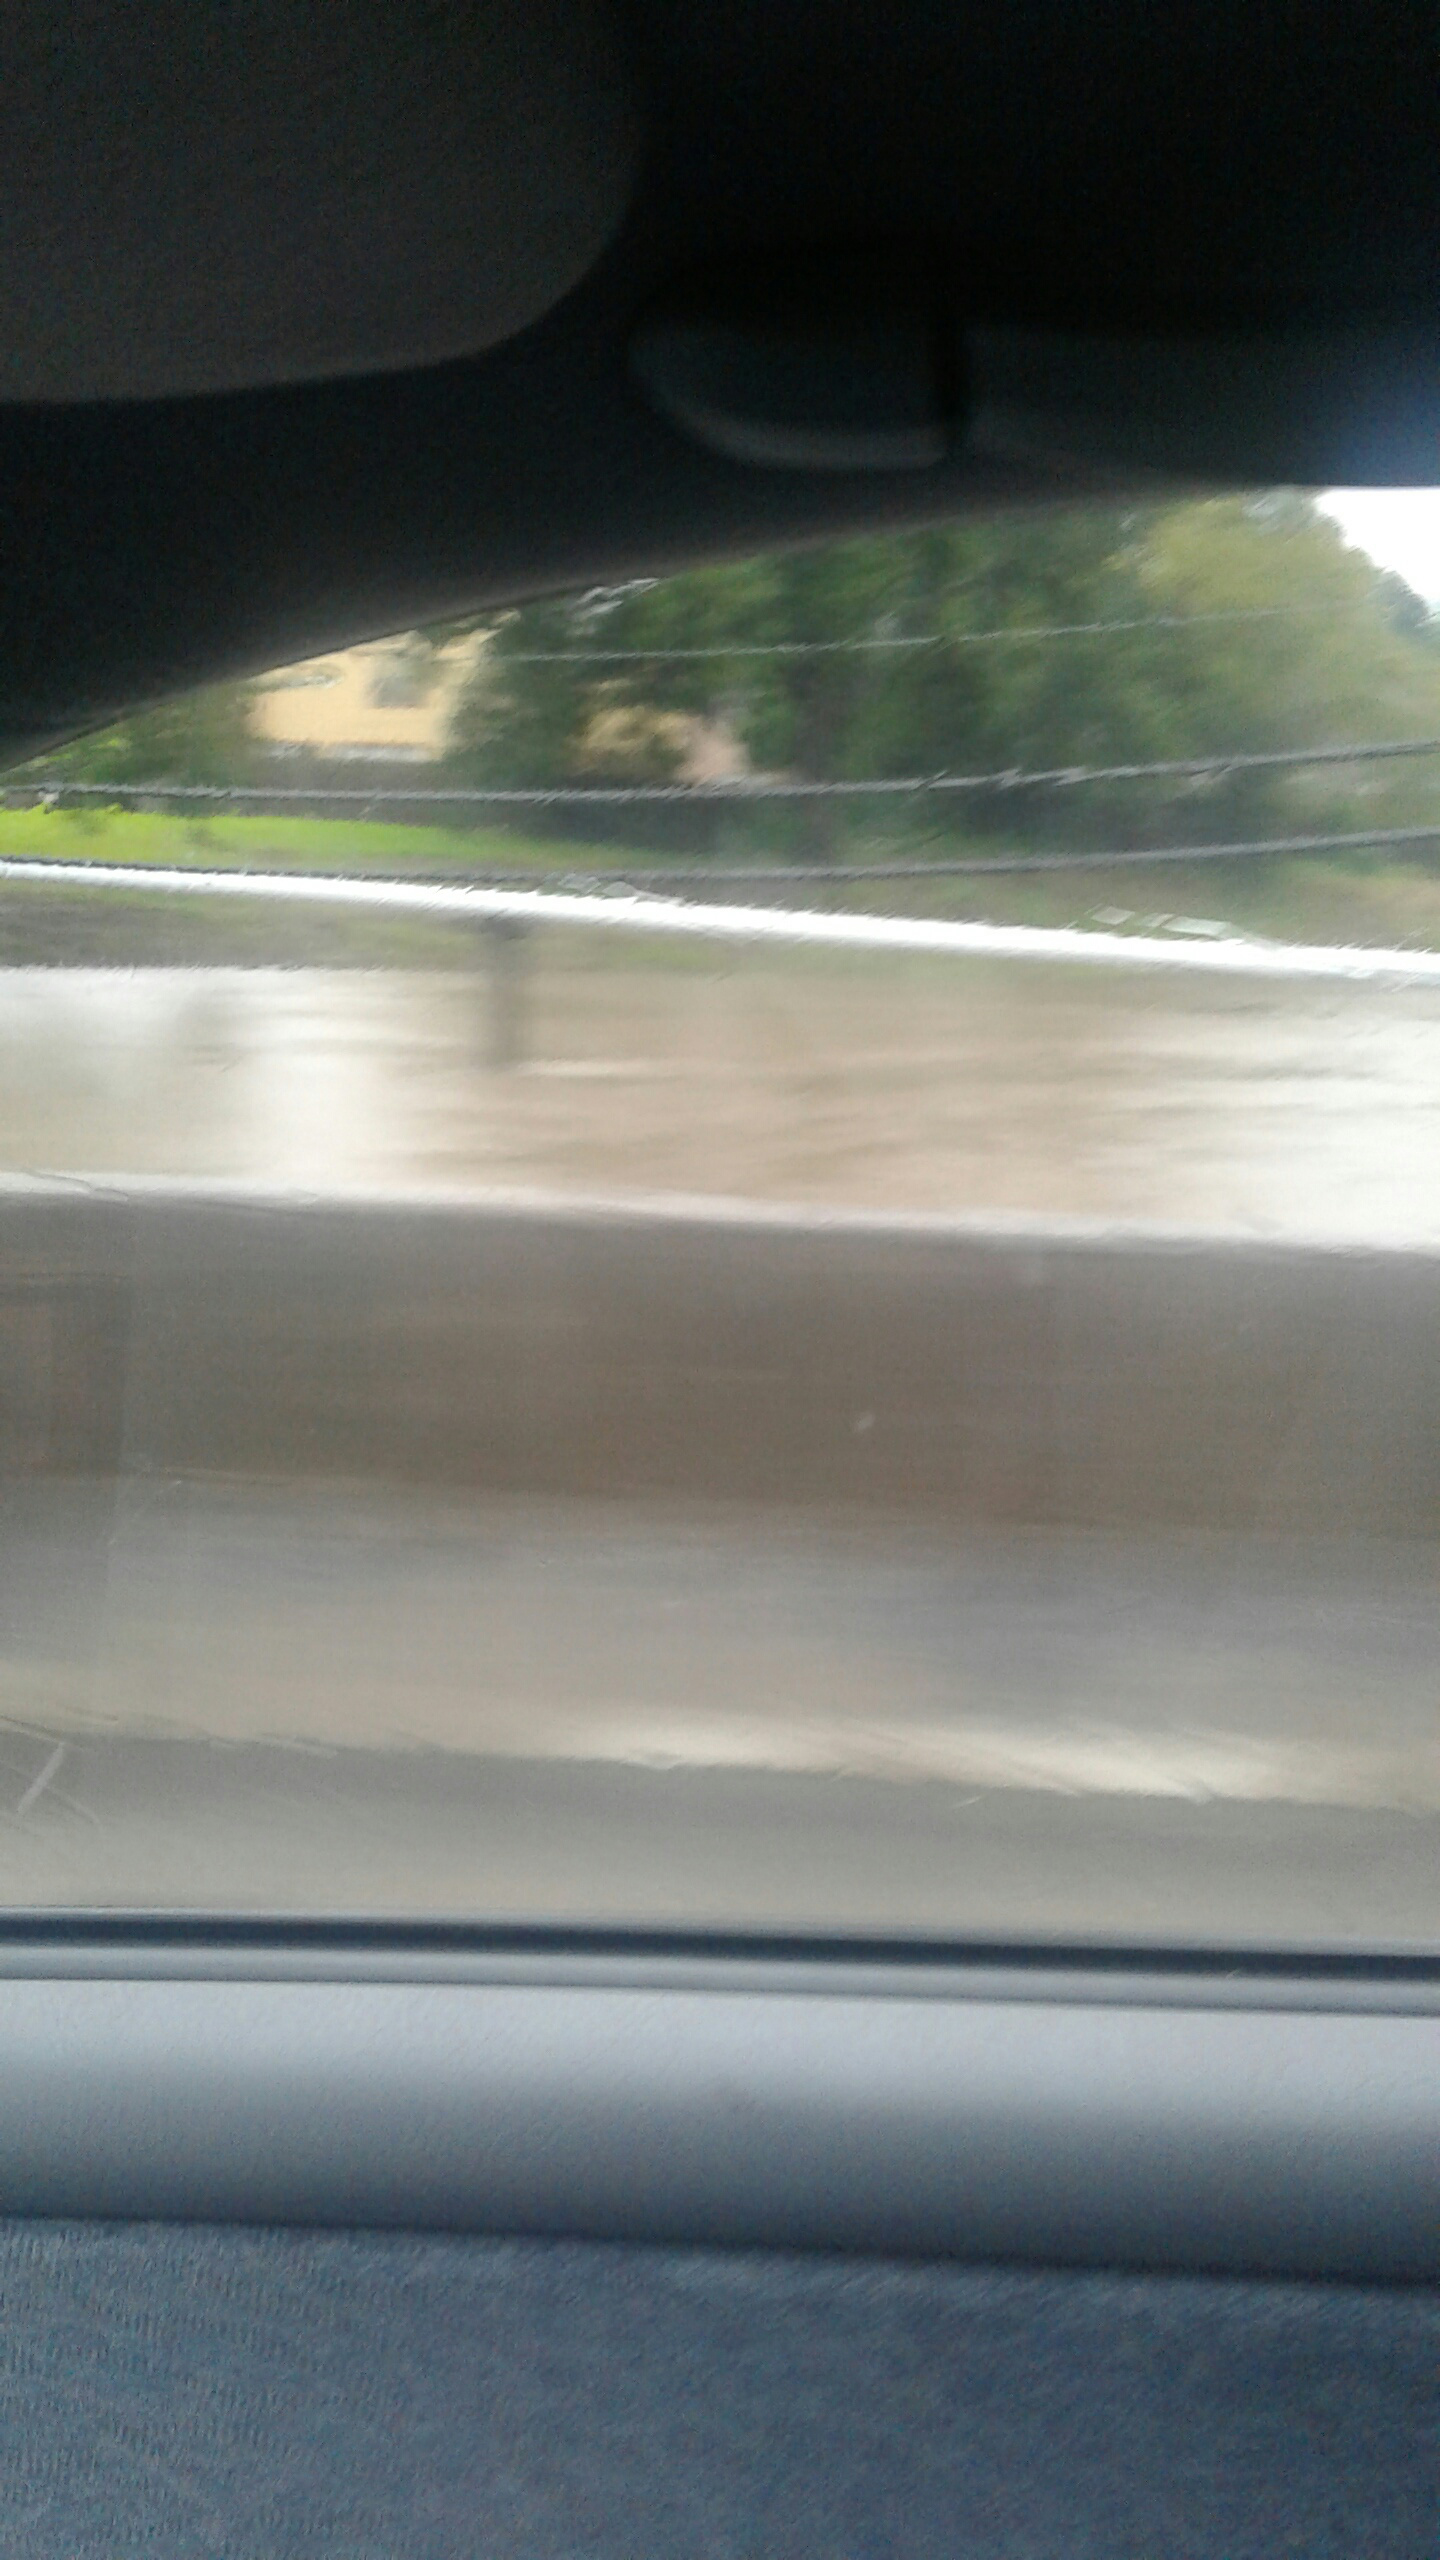 Houston_-_Photo_From_Inside_Flooding_Car.jpg